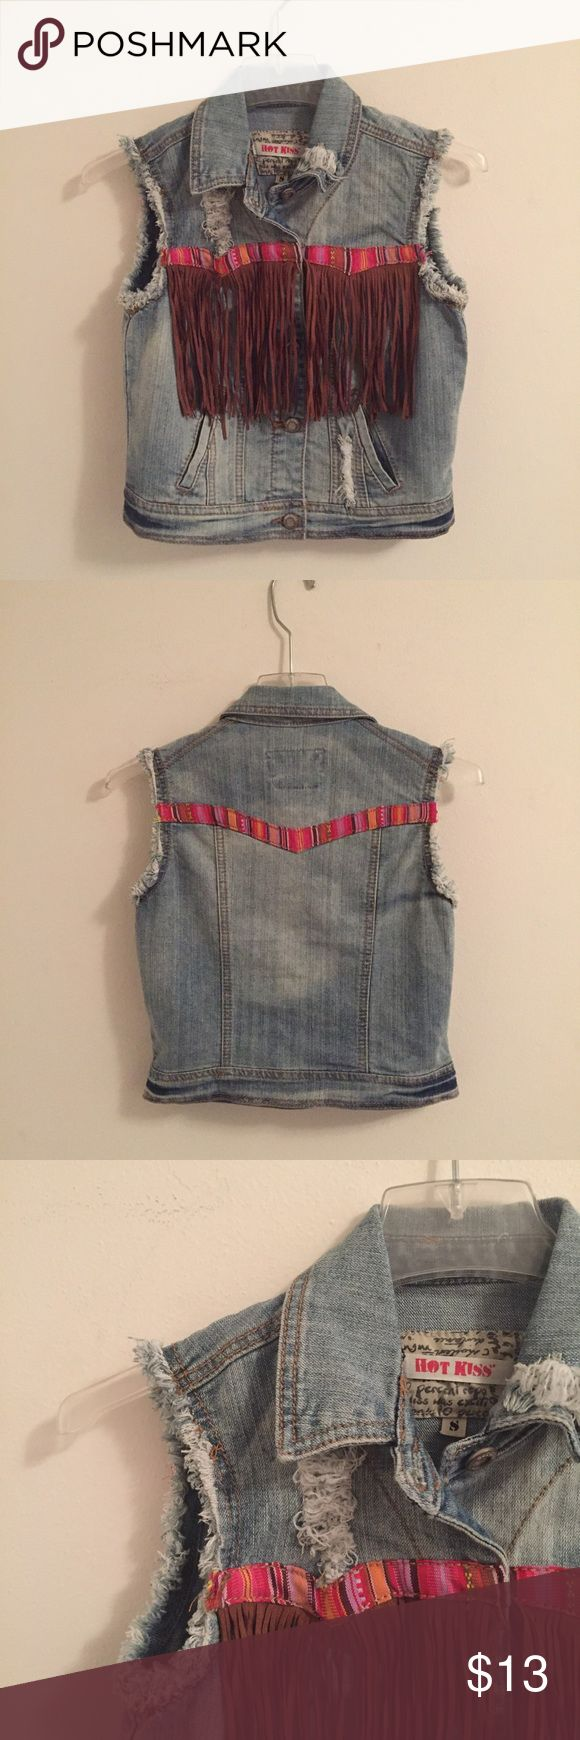 Boho jean vest with fringe detail Super cute distressed jean vest with aztec stitching and fringe detail. Worn a couple times this past summer, in great condition. Super cute over a dress or pair with white jeans Nordstrom Jackets & Coats Vests